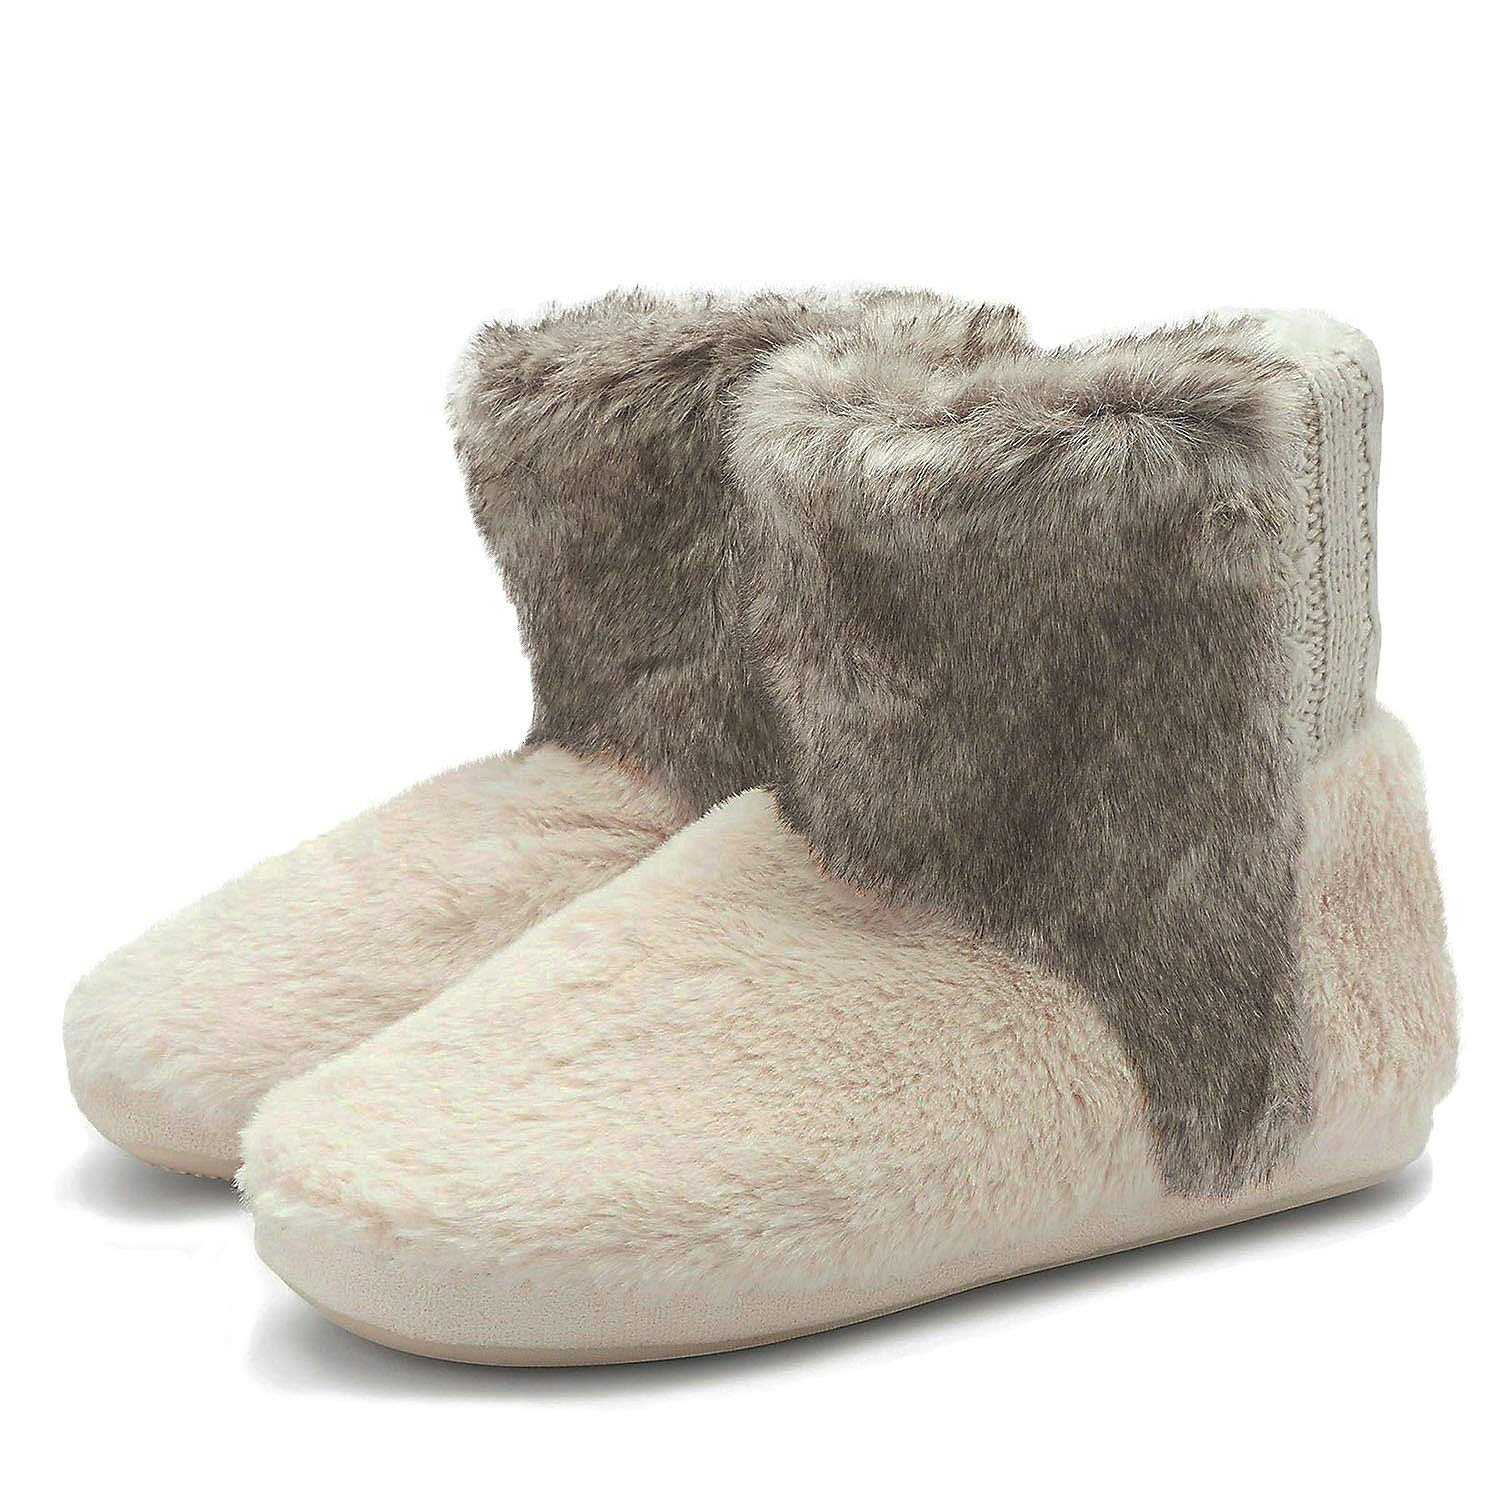 74cfa58ec865f Get Quotations · COFACE Womens Warm Slipper Boots Winter Fluffy Fur Lined  Indoor House Bootie